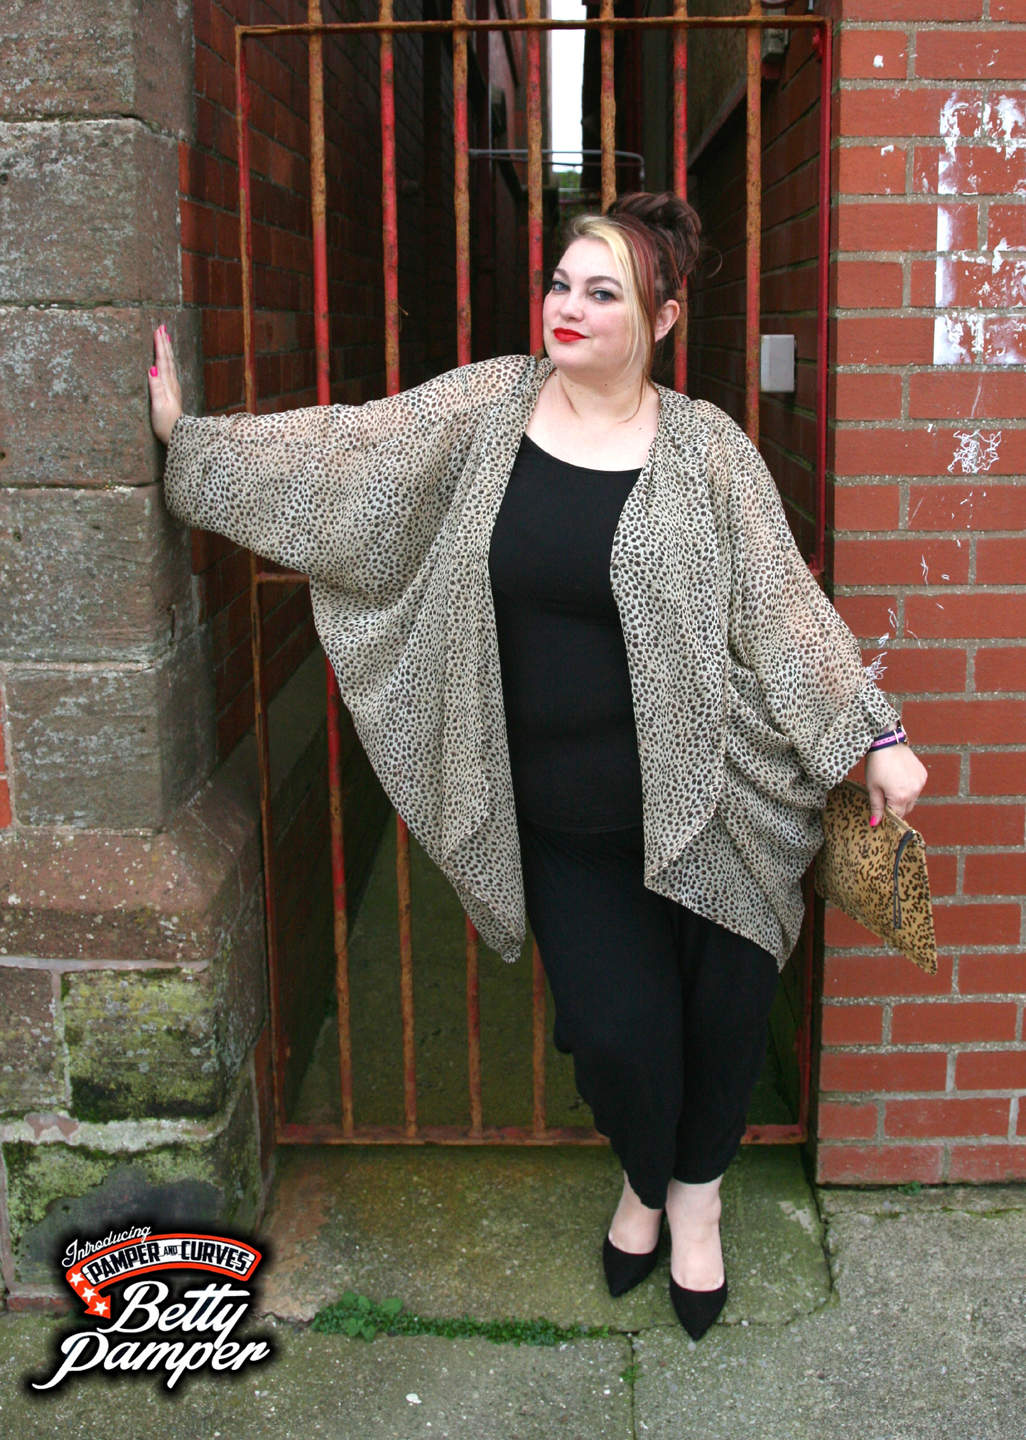 Plus Size Fashion Guide Pamper And Curves